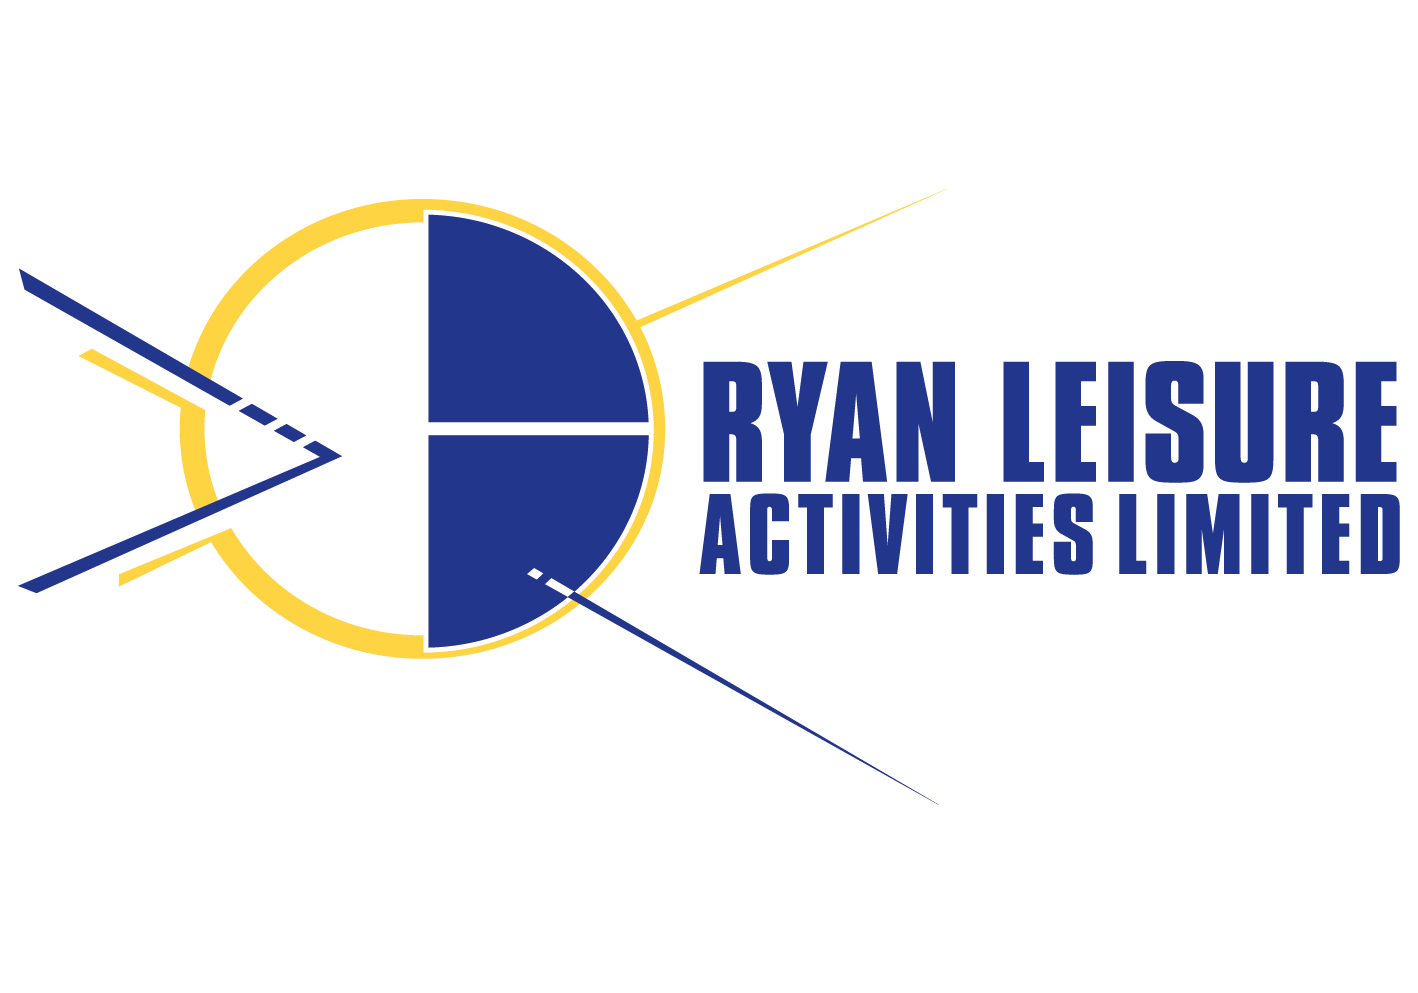 Ryan Leisure Activities logo